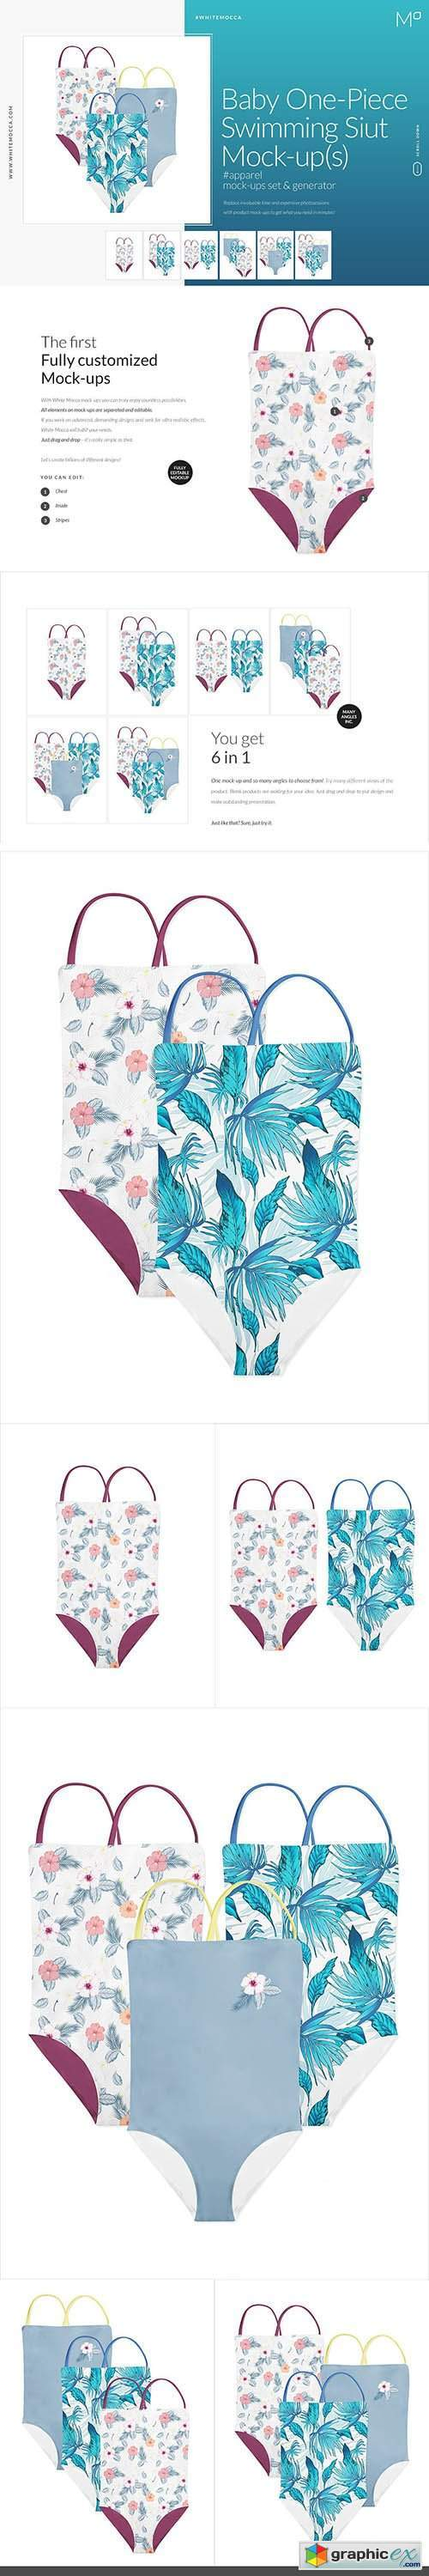 Baby One-Piece Swimming Suit Mock-up